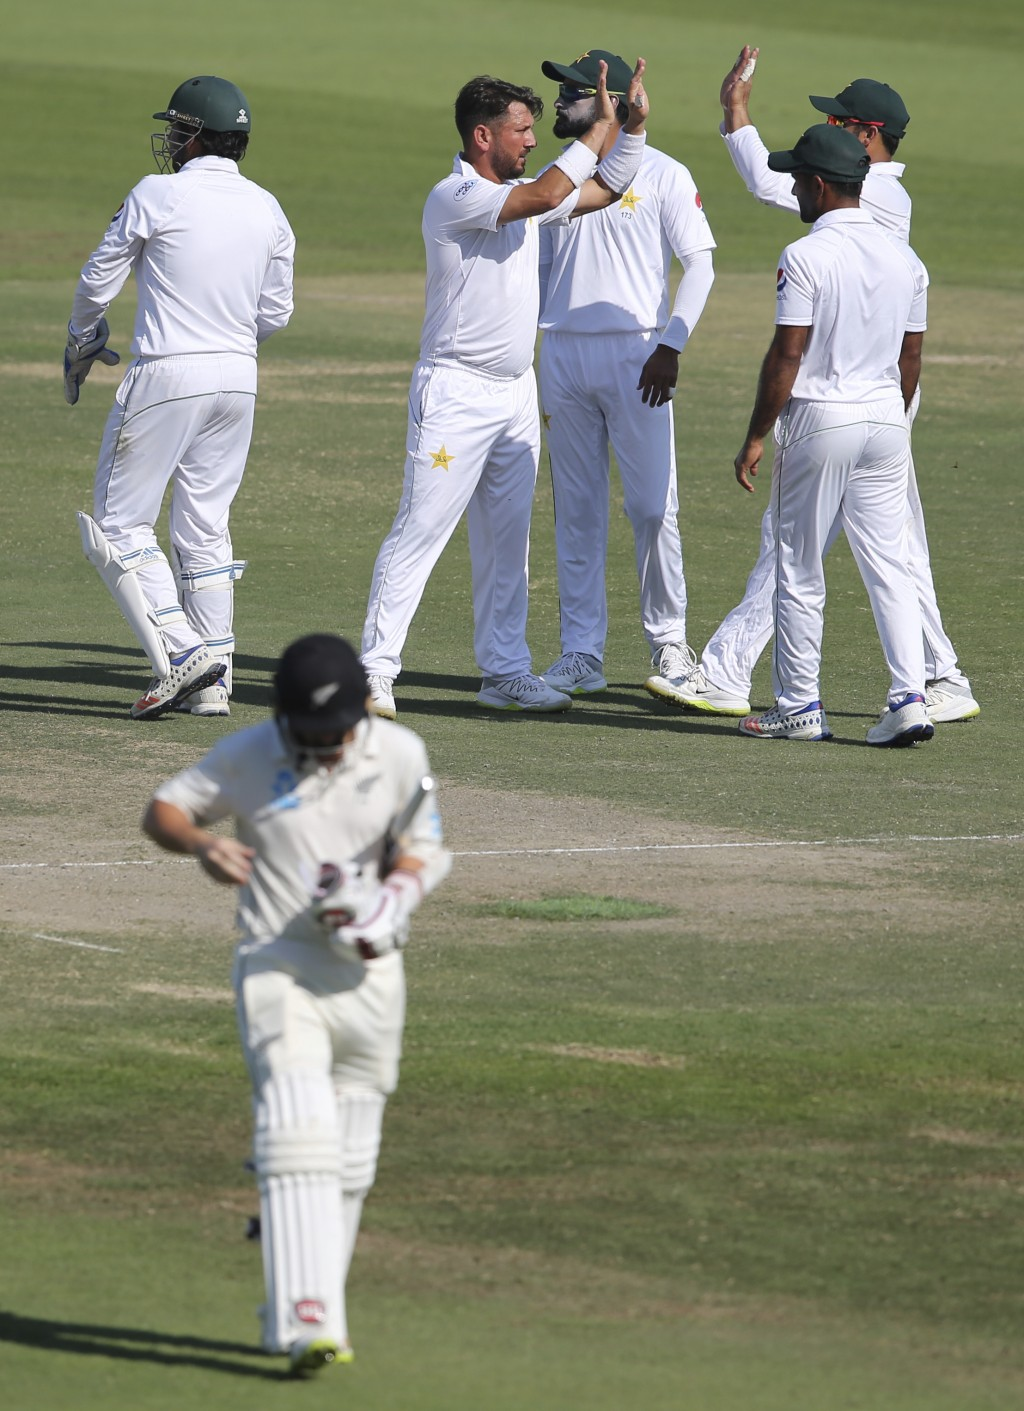 Pakistan's Yasir Shah celebrates dismissal of New Zealand's BJ Watling with team mates in their test match in Abu Dhabi, United Arab Emirates, Friday,